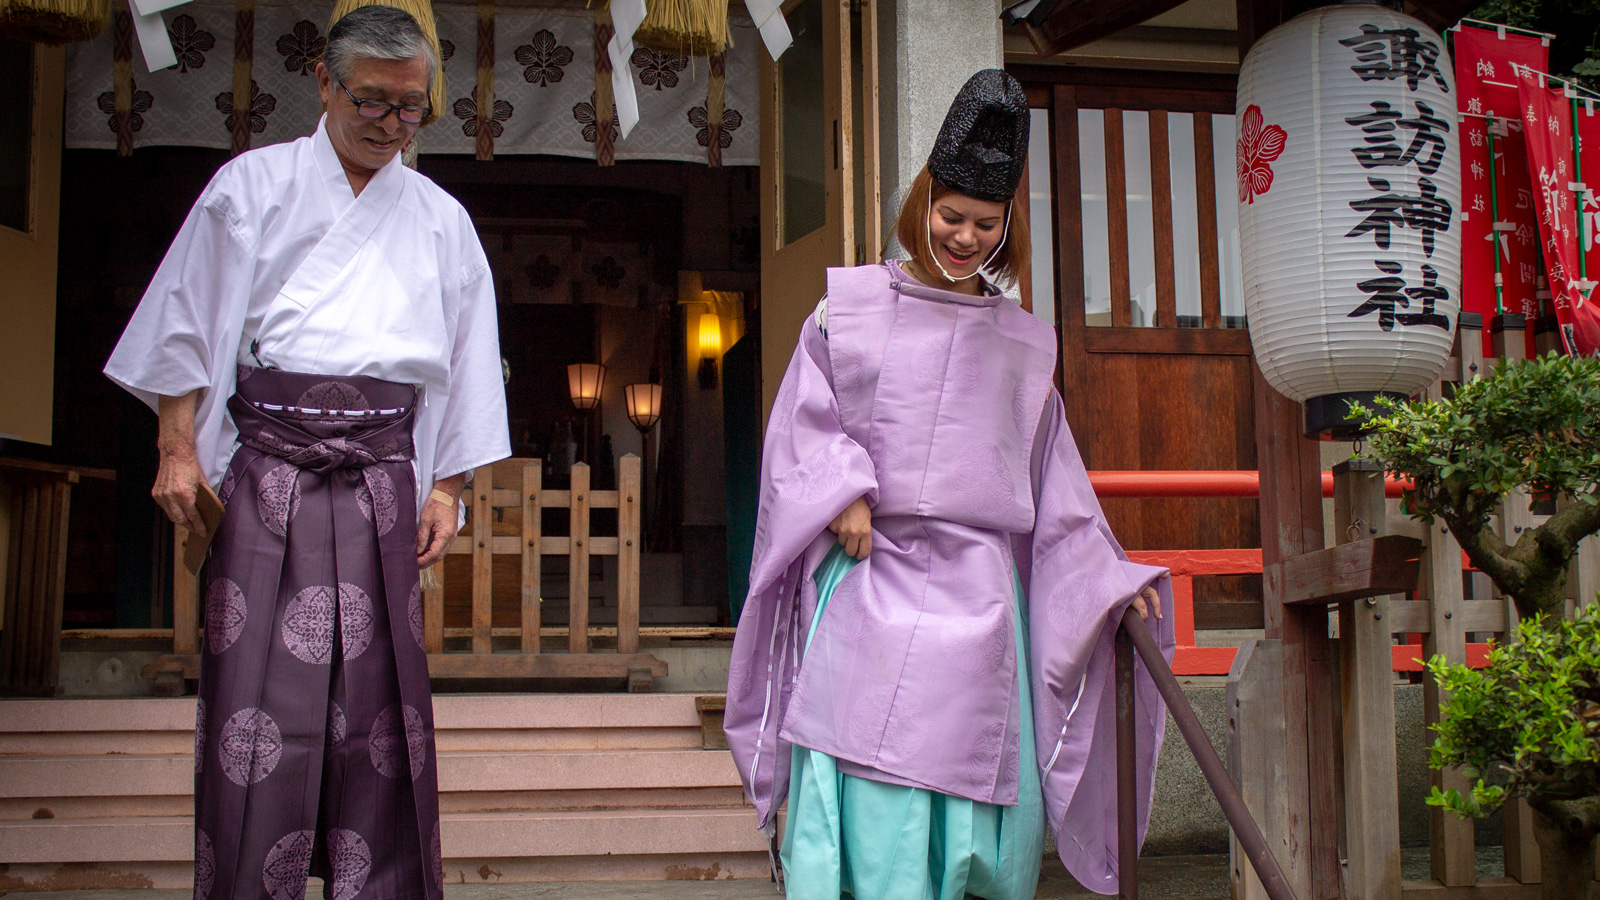 Suwa Shrine visit with Shinto priest costume